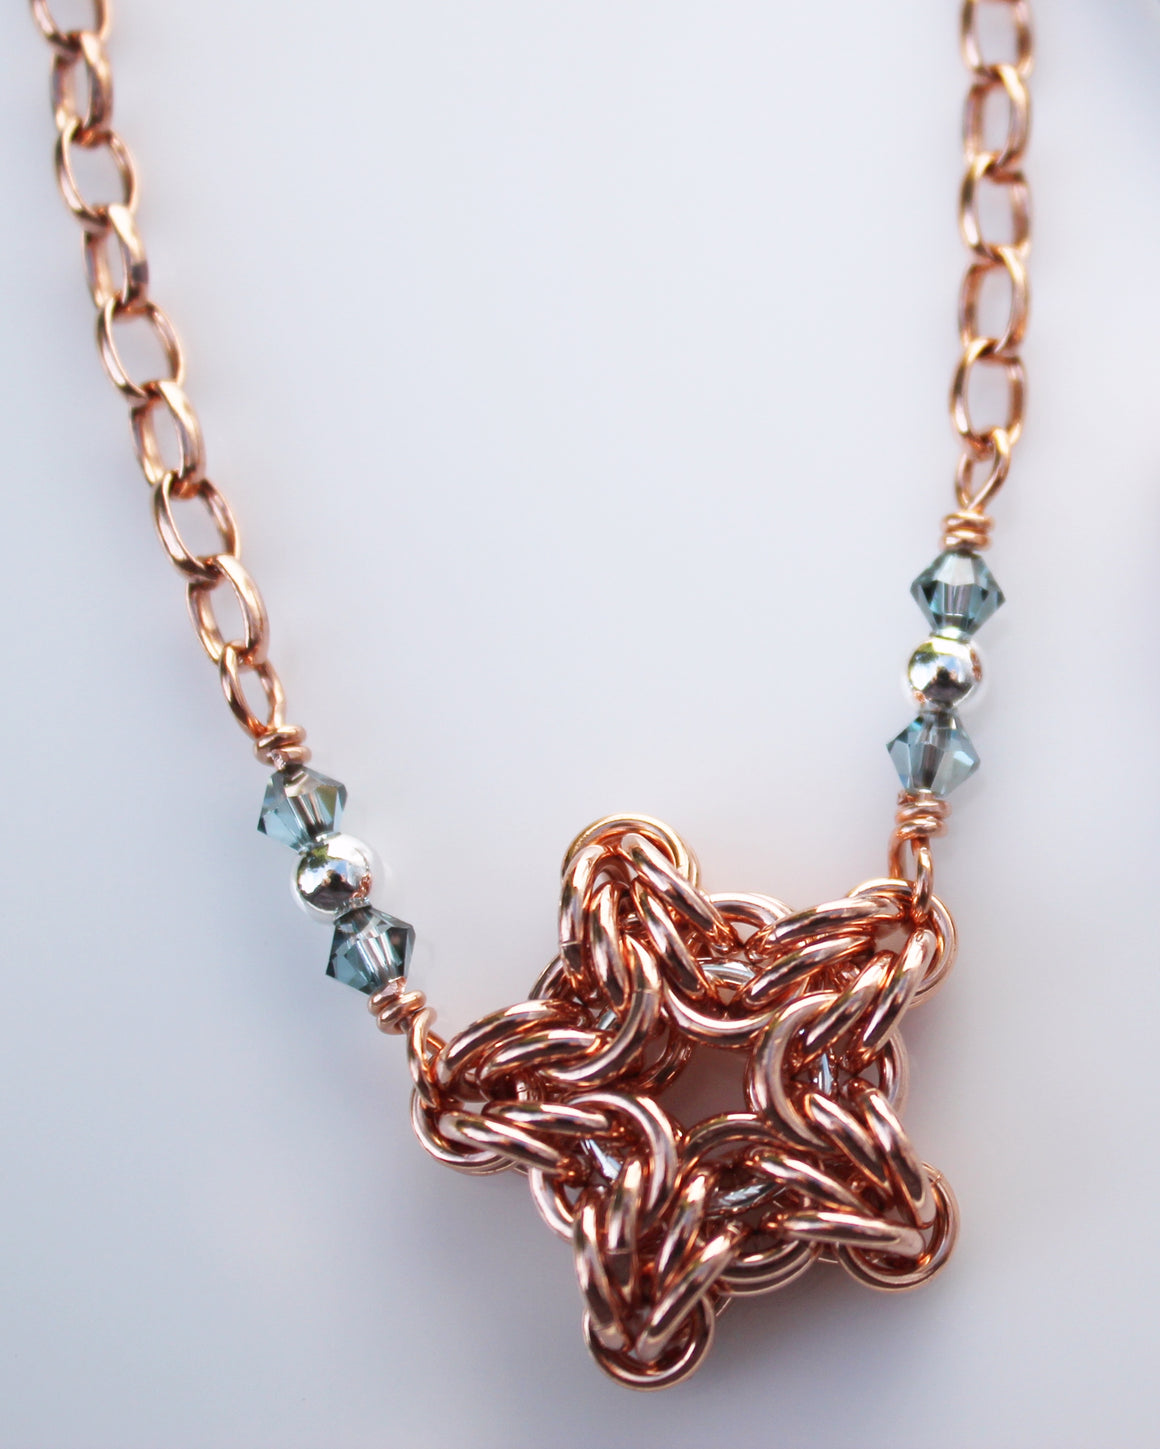 Copper star chainmaille necklace